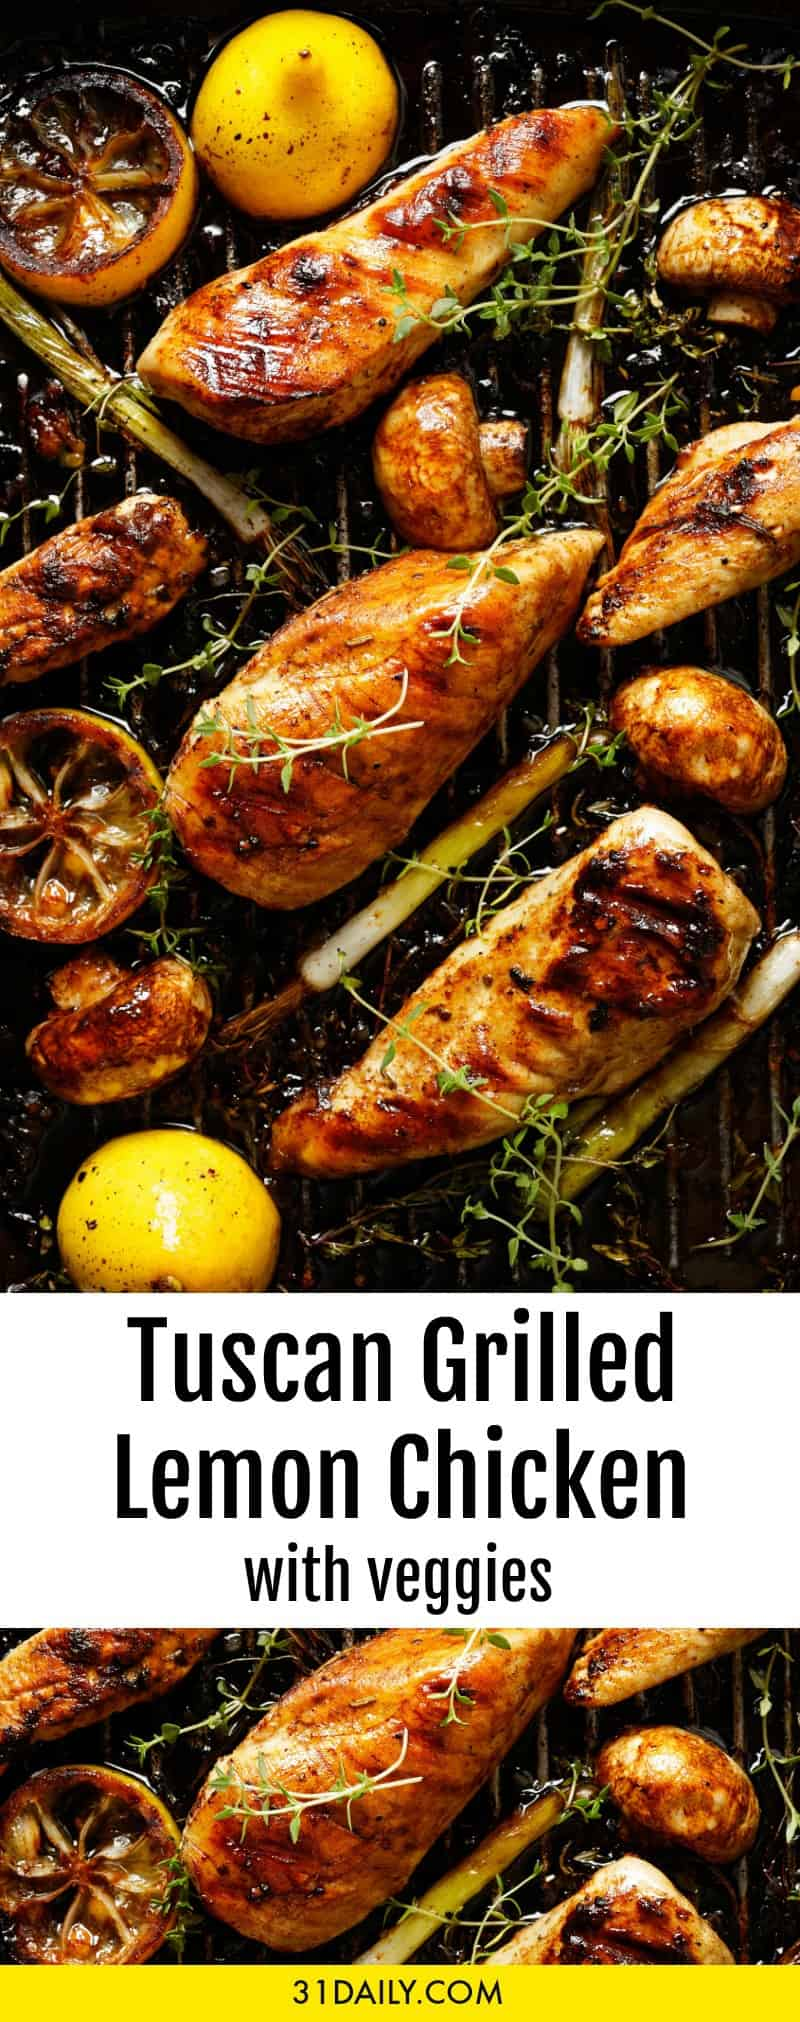 Healthy Tuscan Grilled Lemon Chicken with Vegetables | 31Daily.com